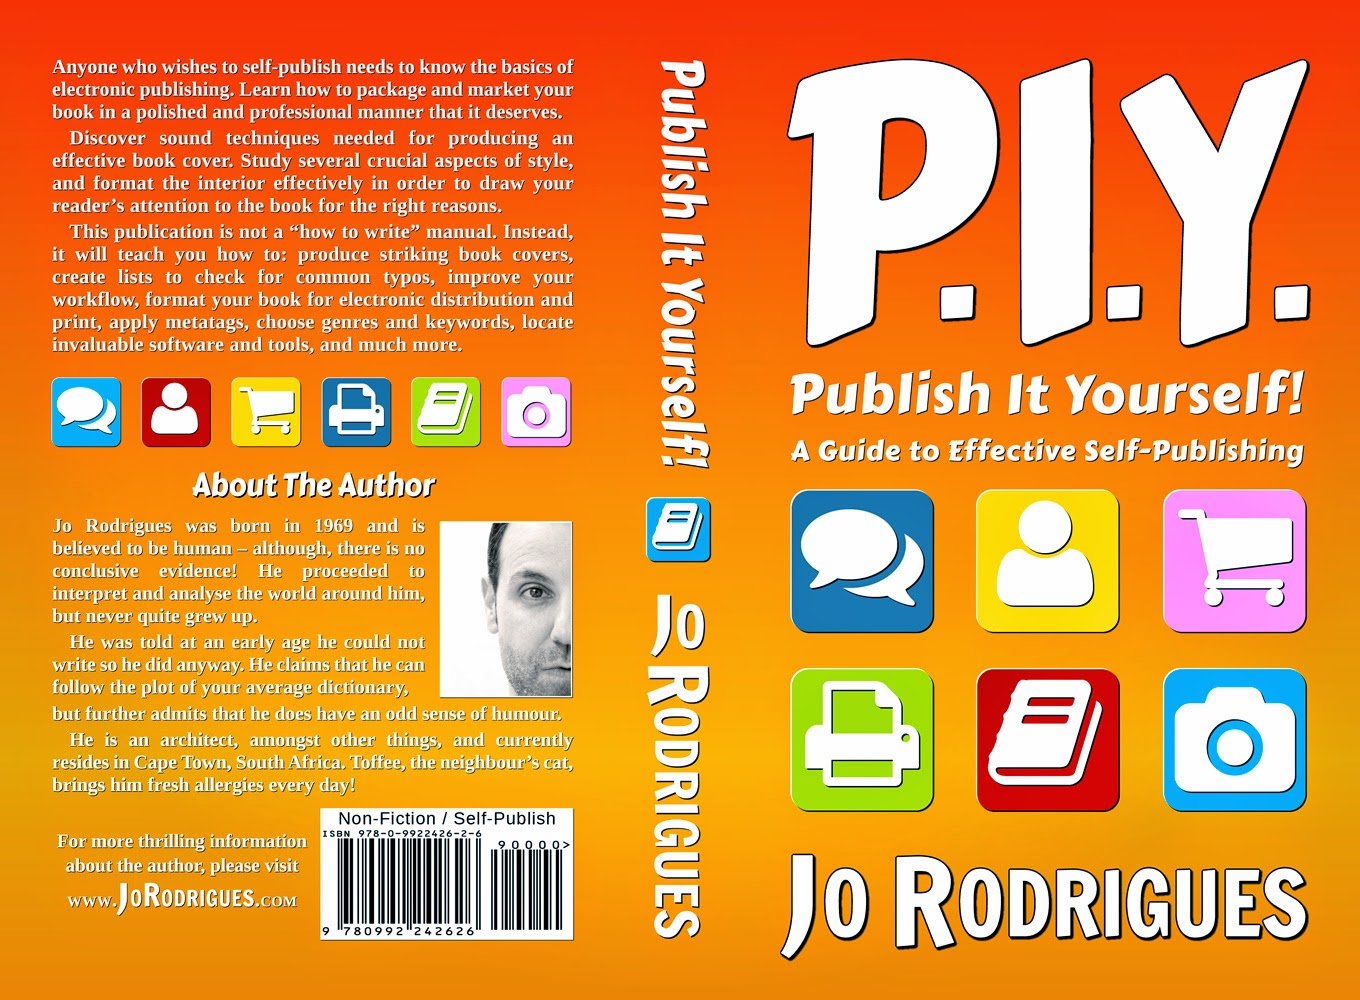 P.I.Y. - Publish It Yourself! - Print Cover